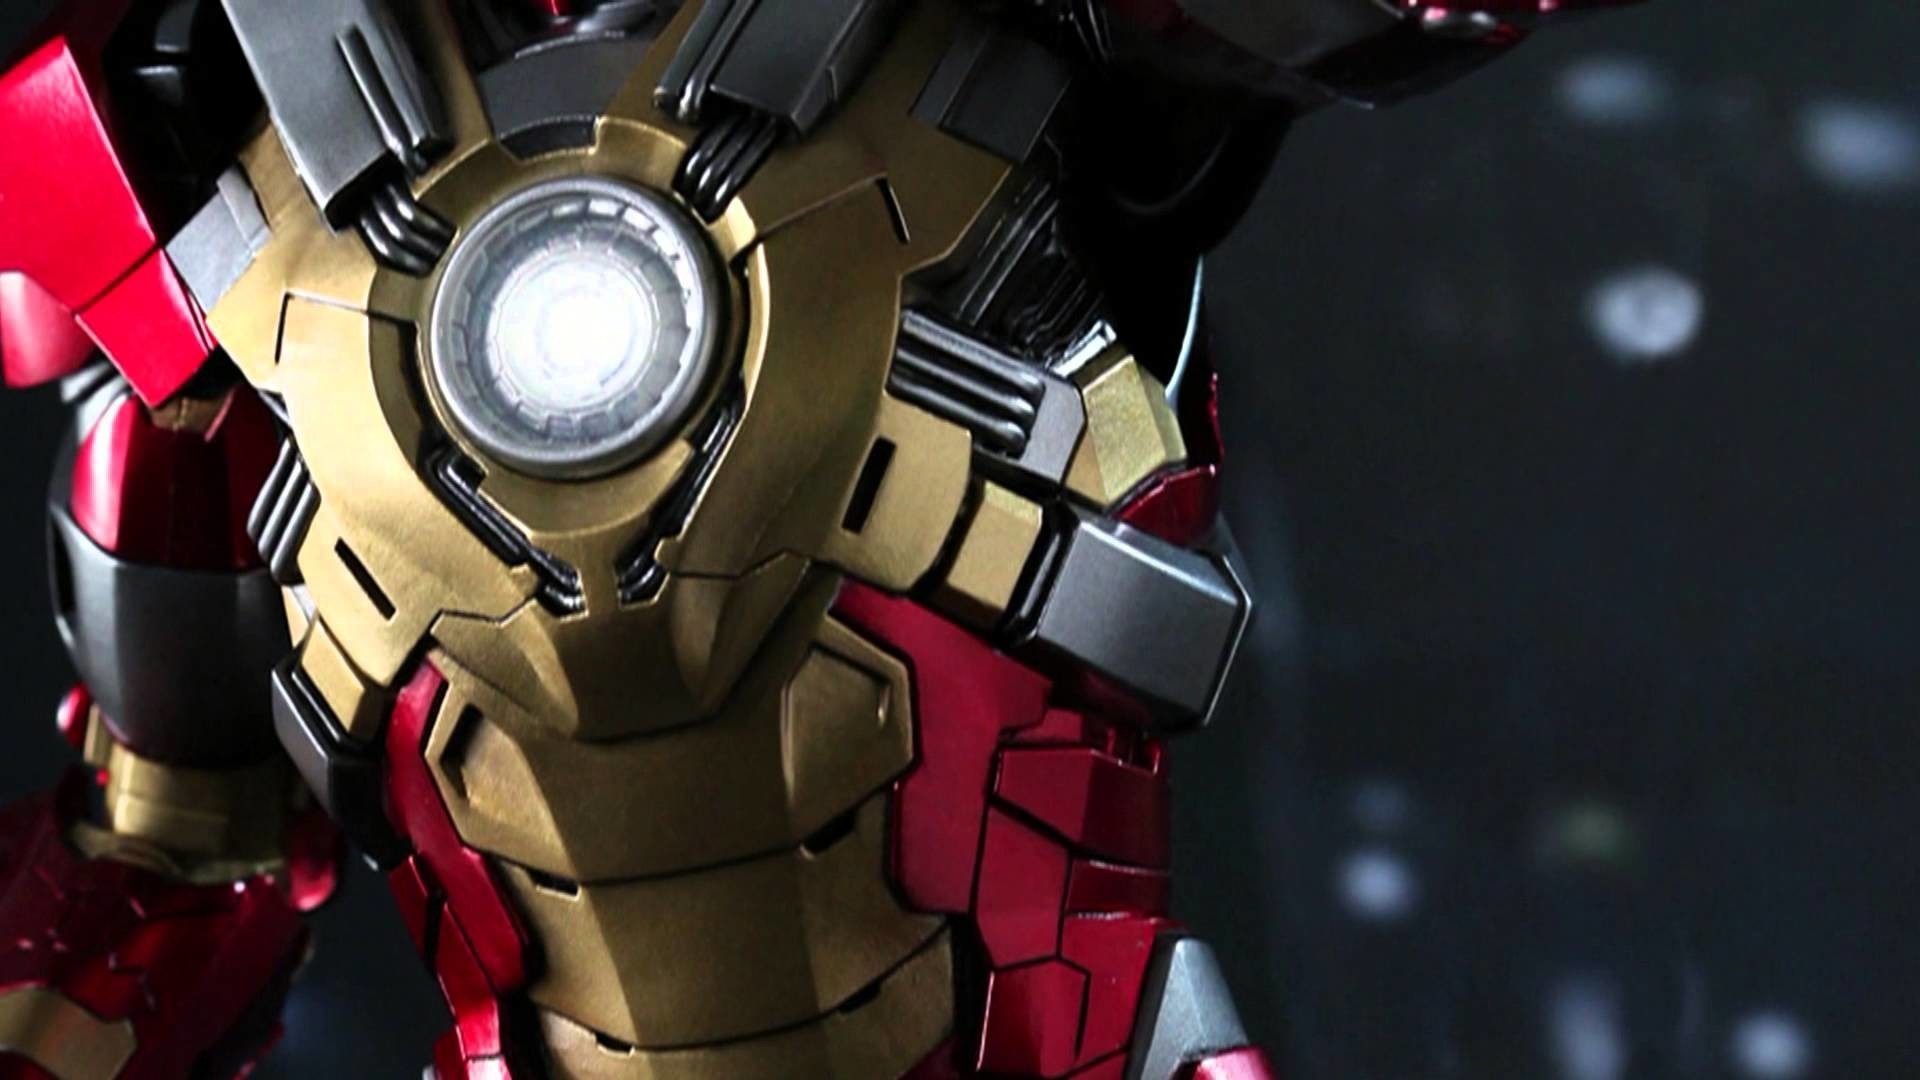 1920x1080 Images For Iron Man 3 Suit Wallpapers Hd